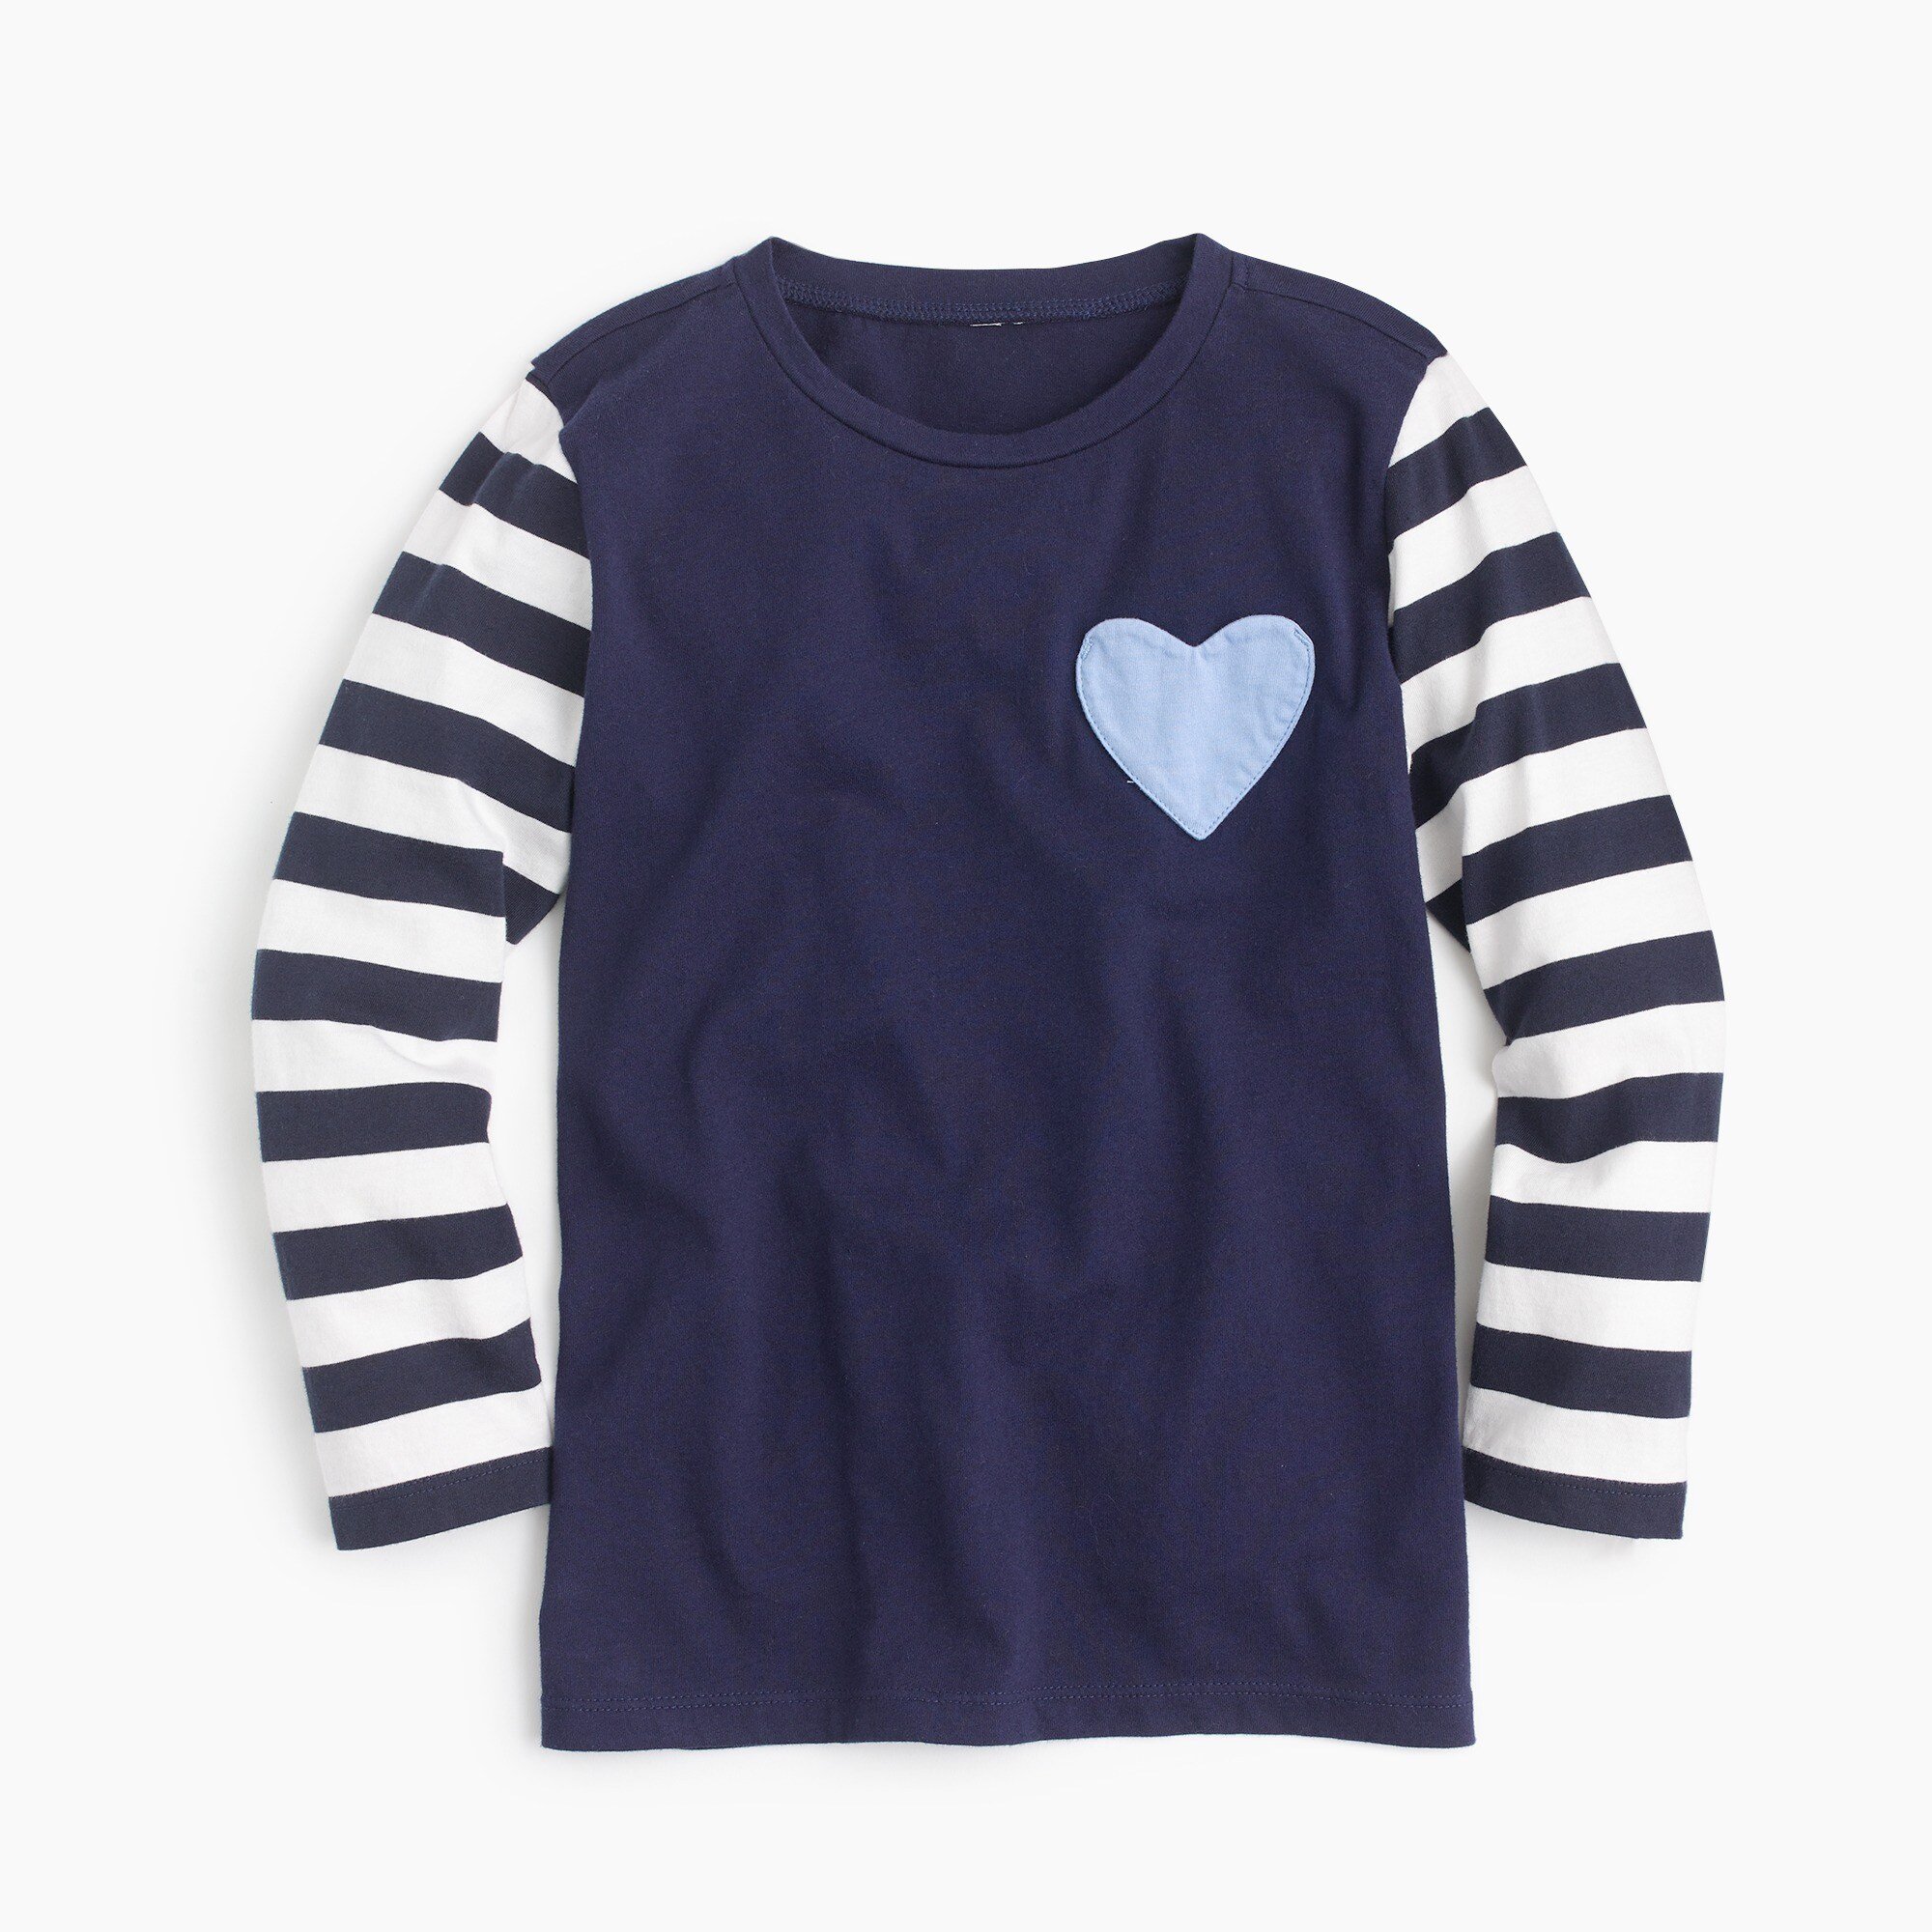 Girls' heart-pocket T-shirt girl new arrivals c